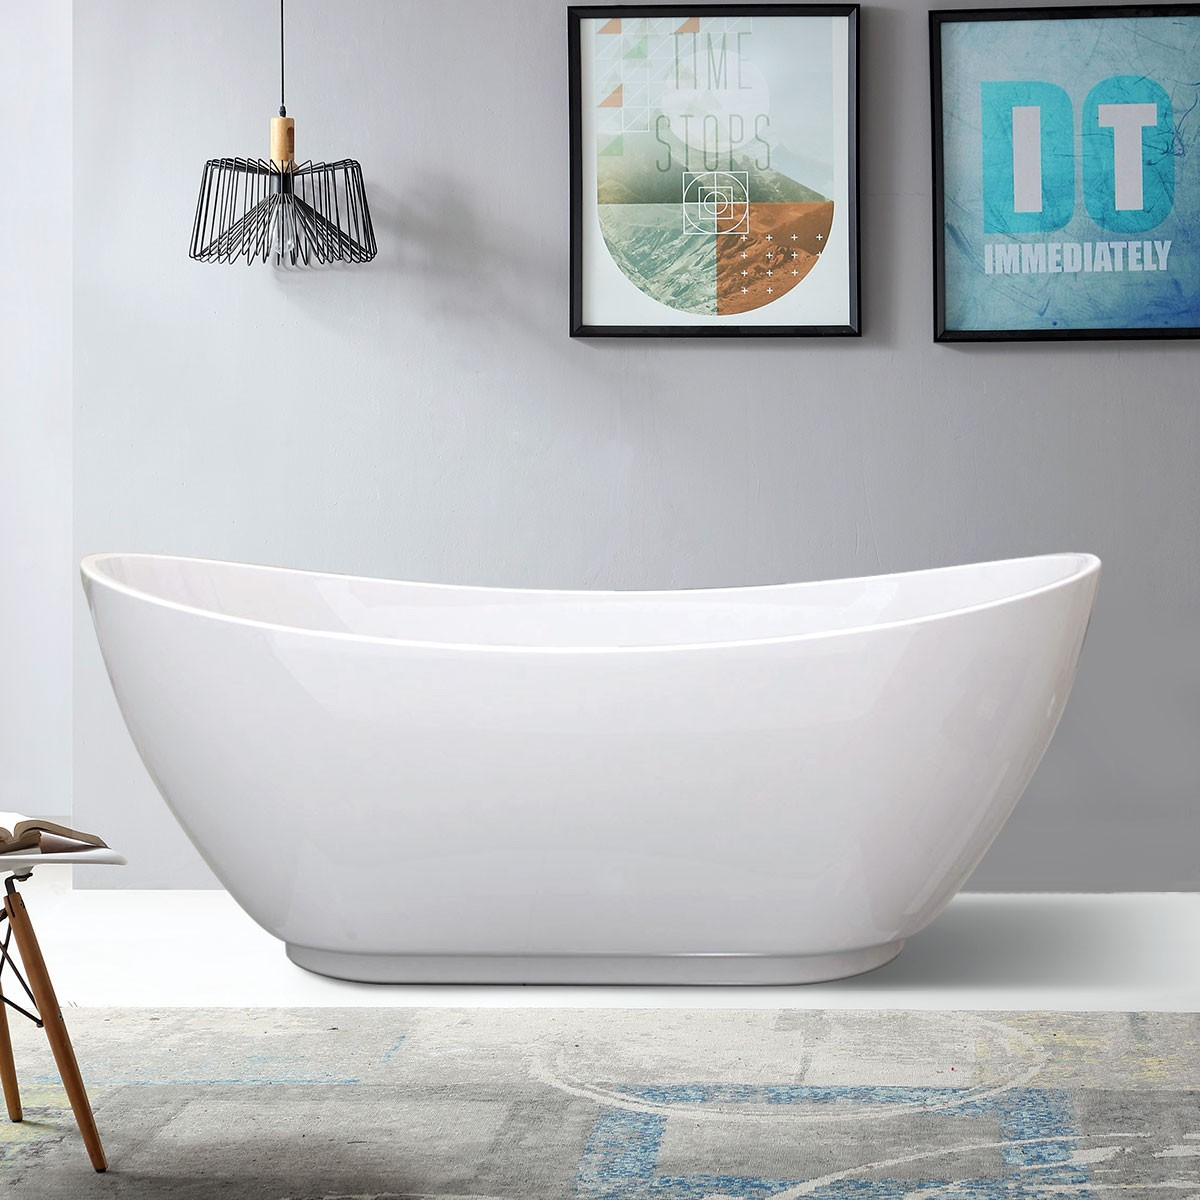 66 In Seamless Freestanding Bathtub - Acrylic Pure White (DK-PW-10774)